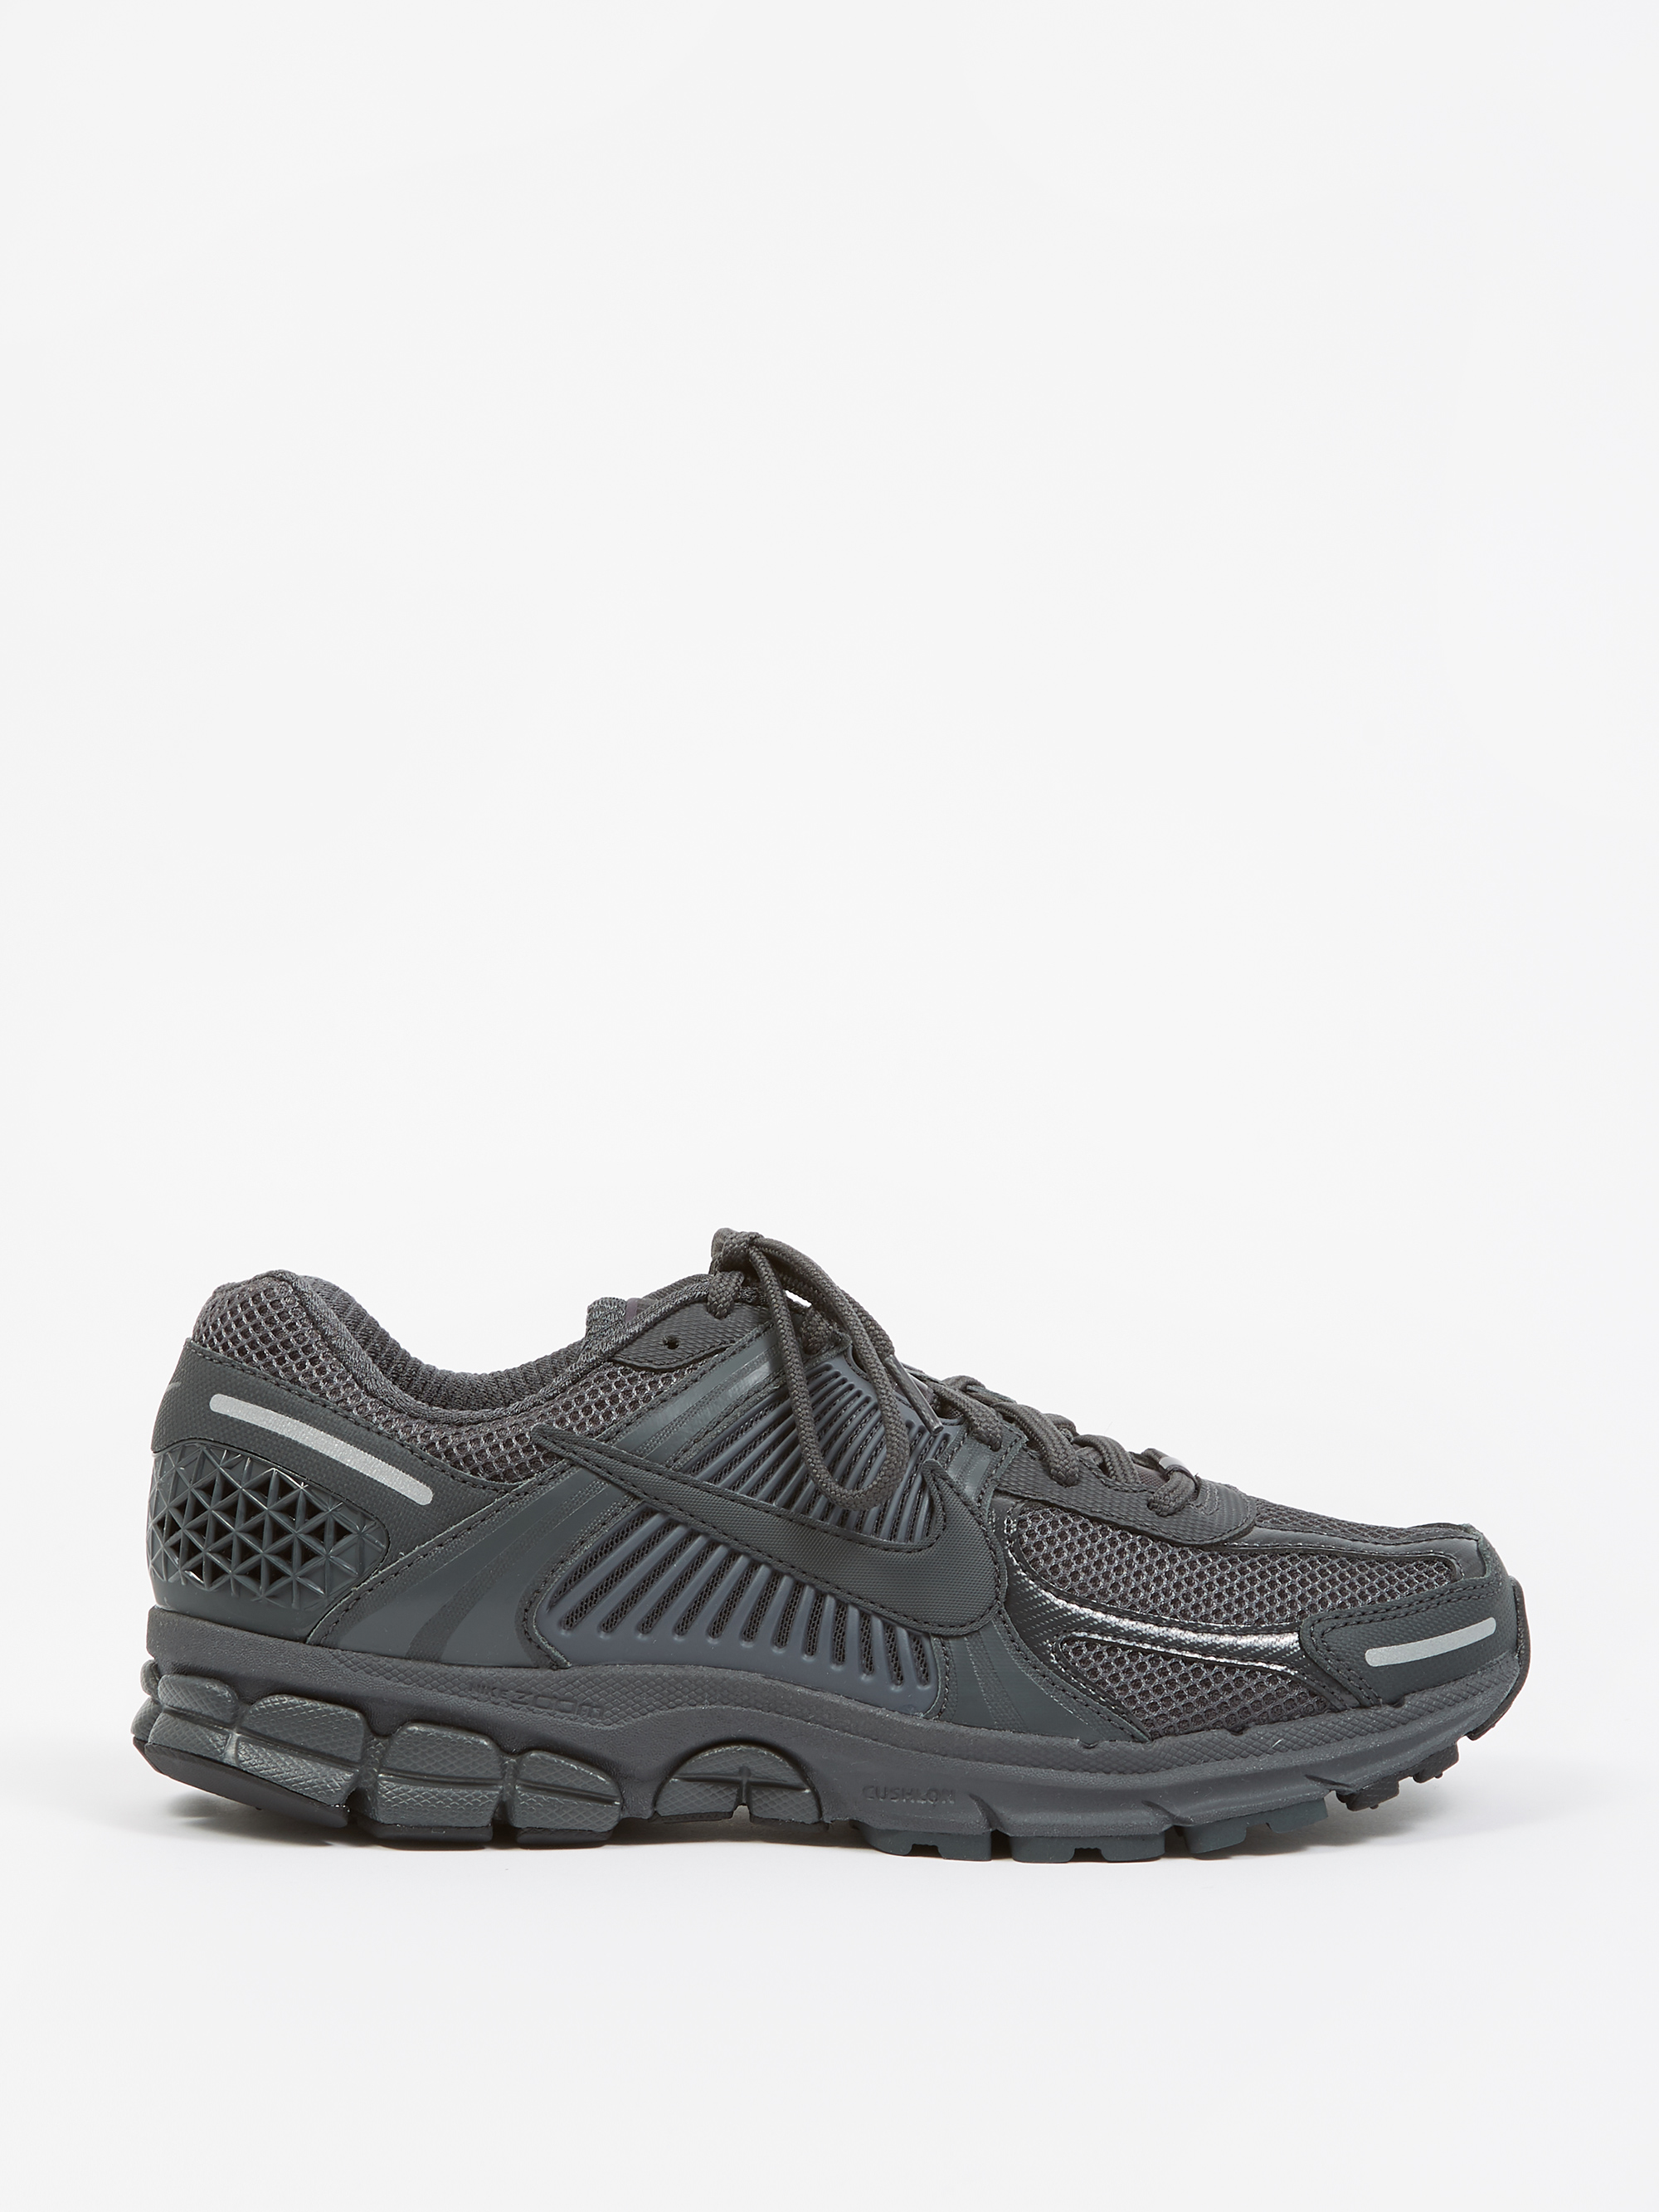 new product 7b9a8 191d6 Nike Zoom Vomero 5 SP - Anthracite Anthracite-Black-Wolf Grey